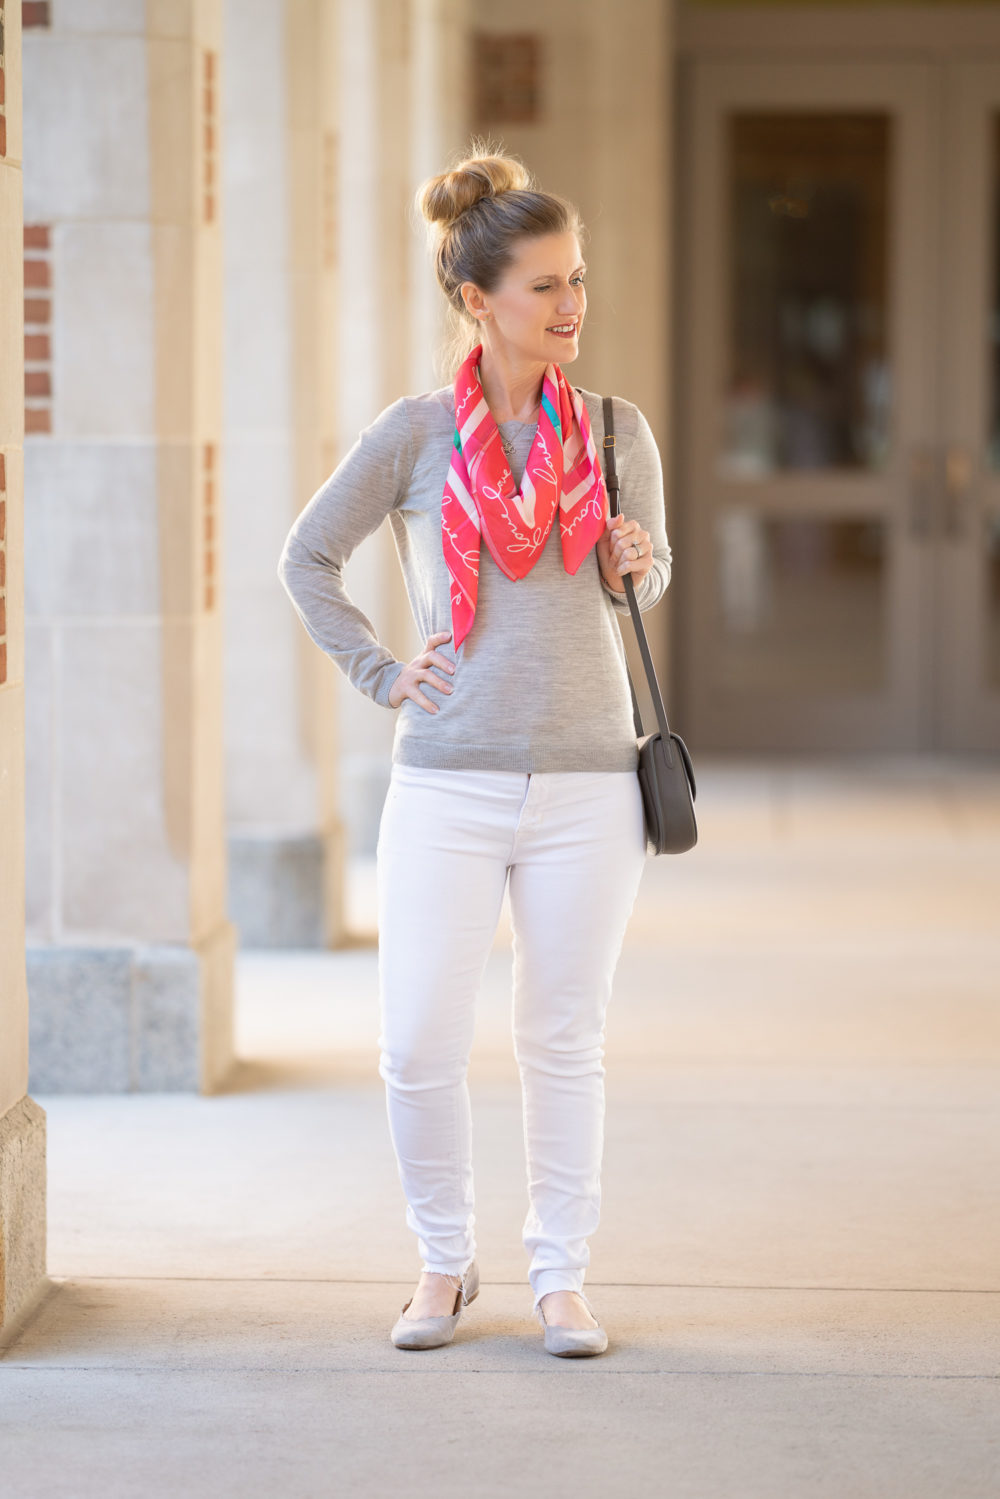 b6df991f2cc9 Petite Fashion and Style Blog | Talbots Lulu DK Scarf | Breast Cancer  Awareness Month